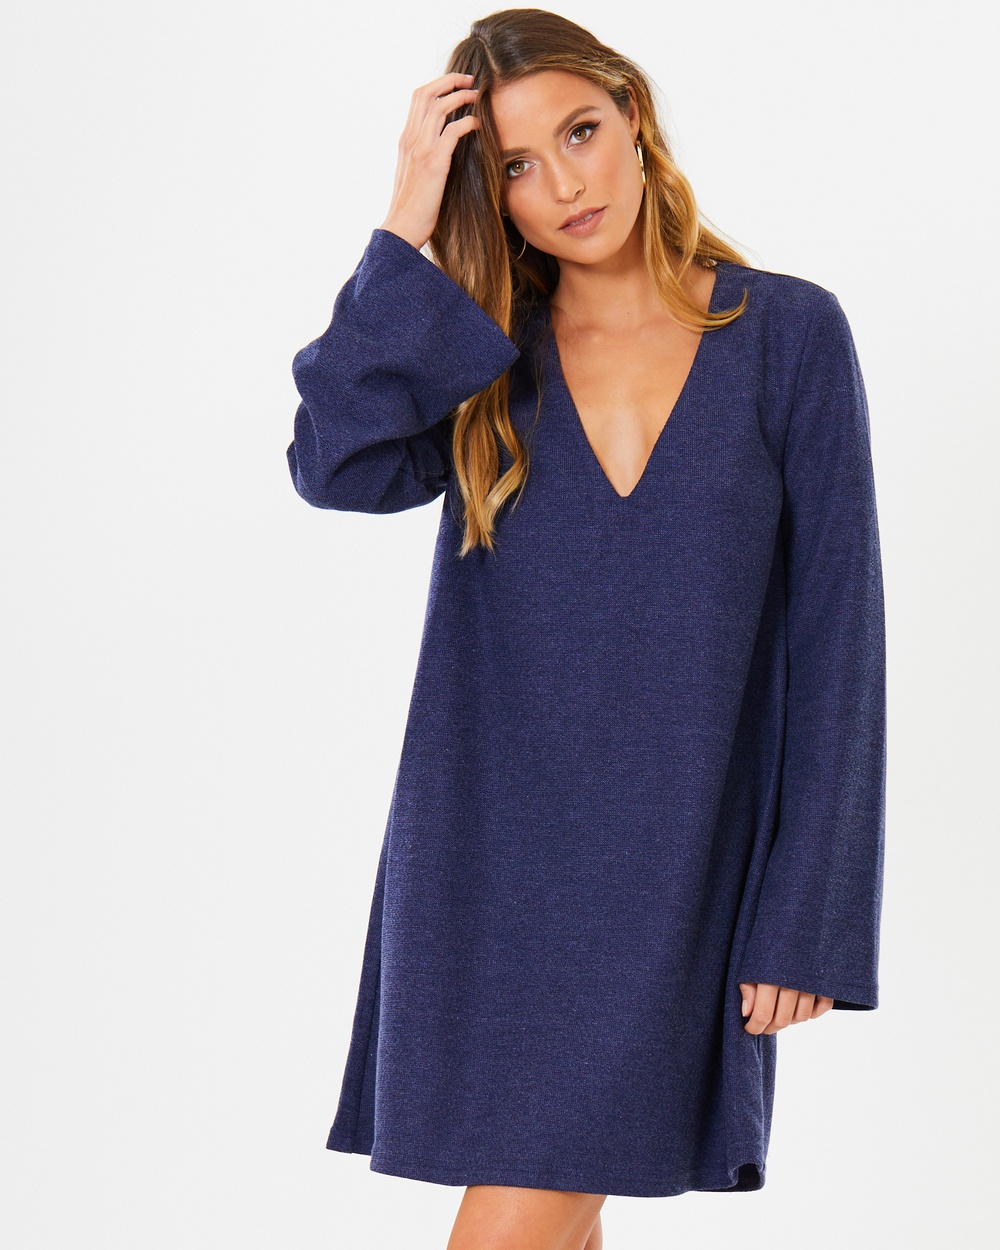 Calli Symi Knit Dress Dresses Blue-Grey Symi Knit Dress